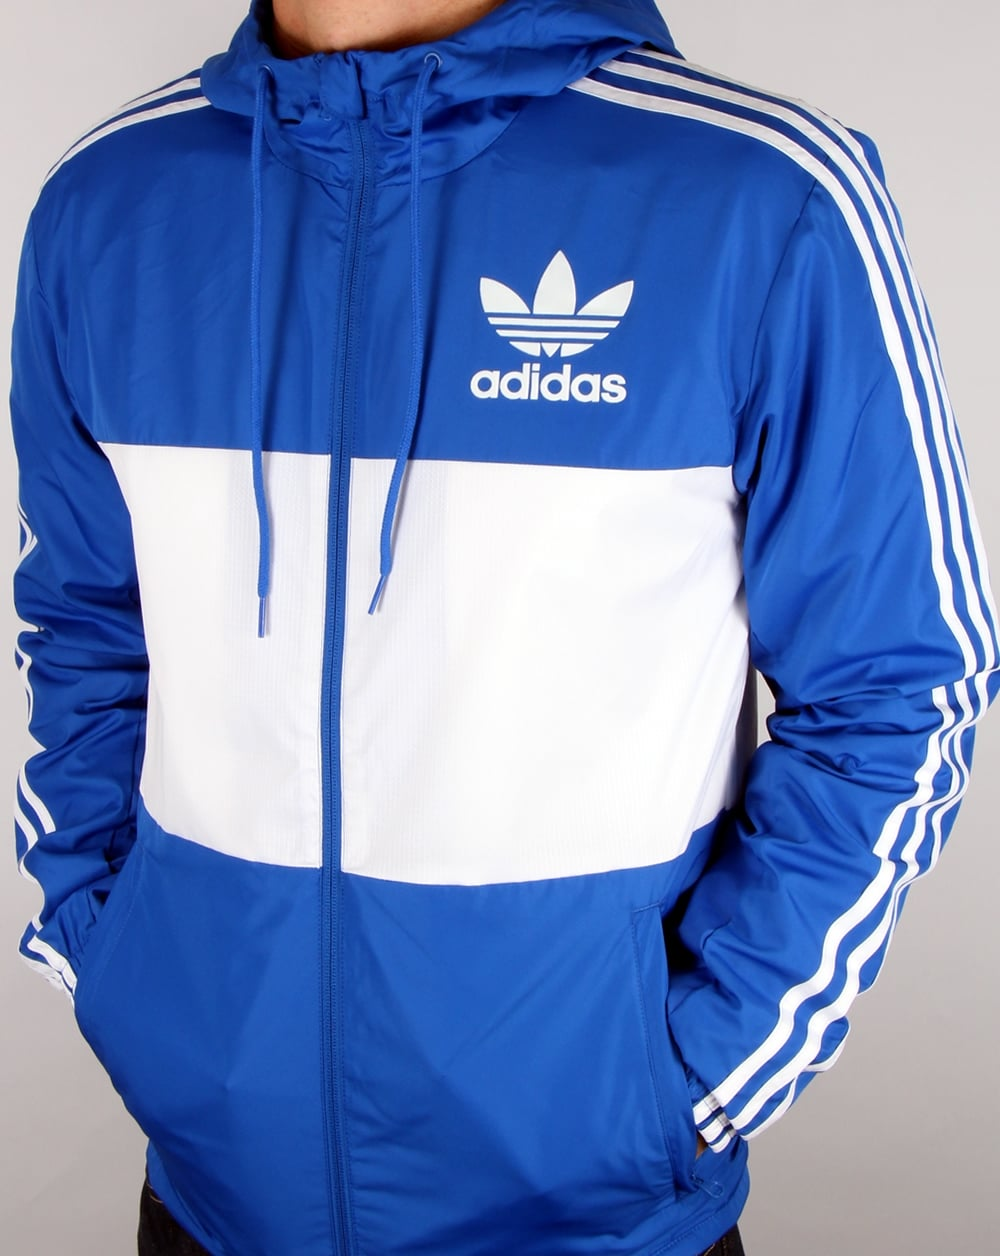 Adidas Originals California Windbreaker Blue white, Men s, Jacket fcf1c34a7e